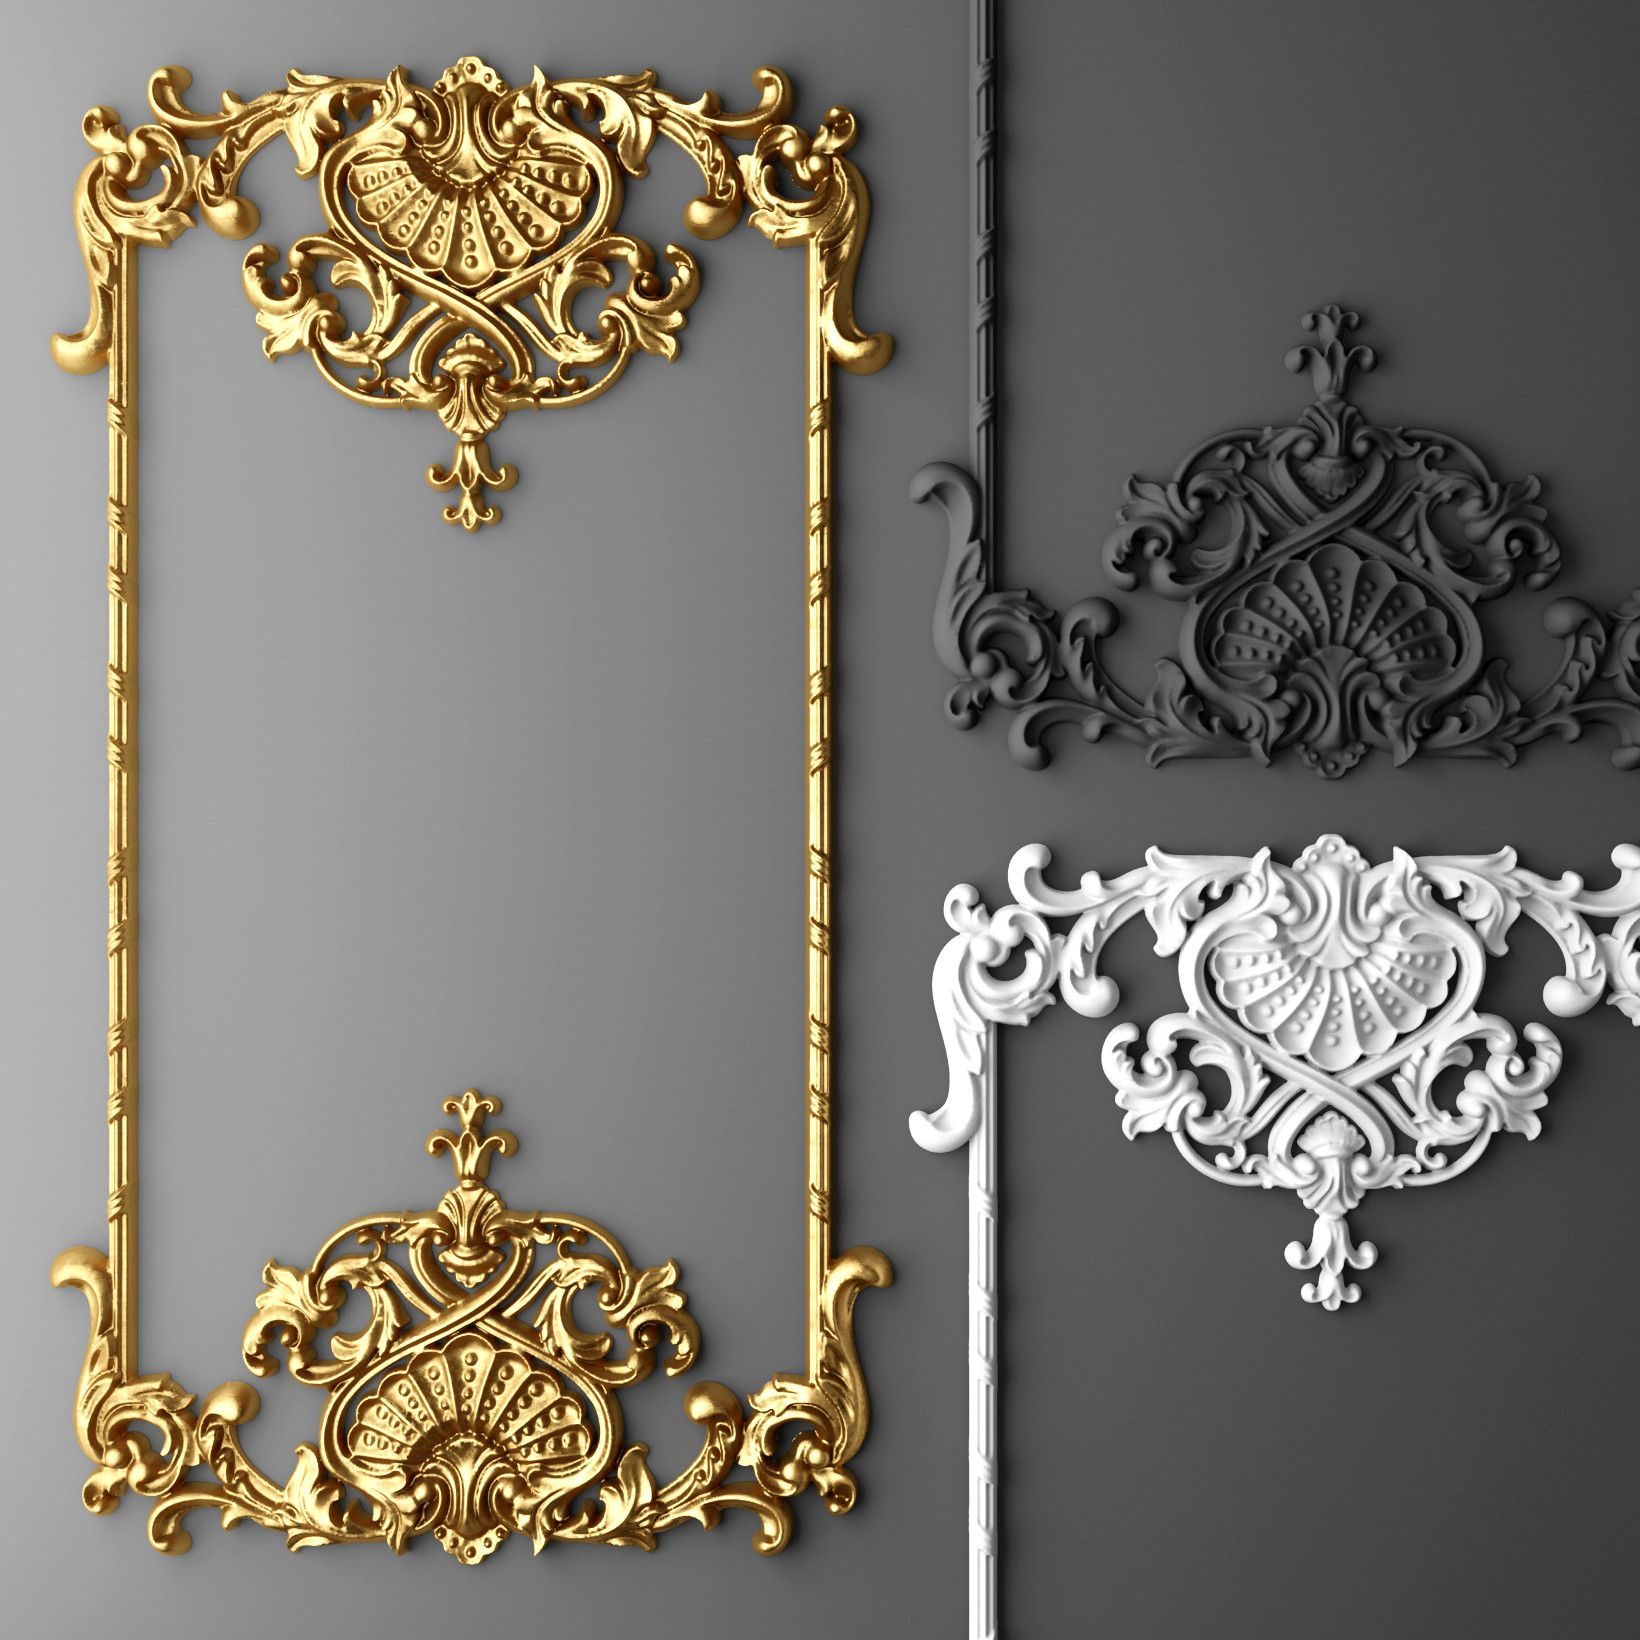 Home Design 3d Gold Import: DIY Mirrors Furniture Molding In